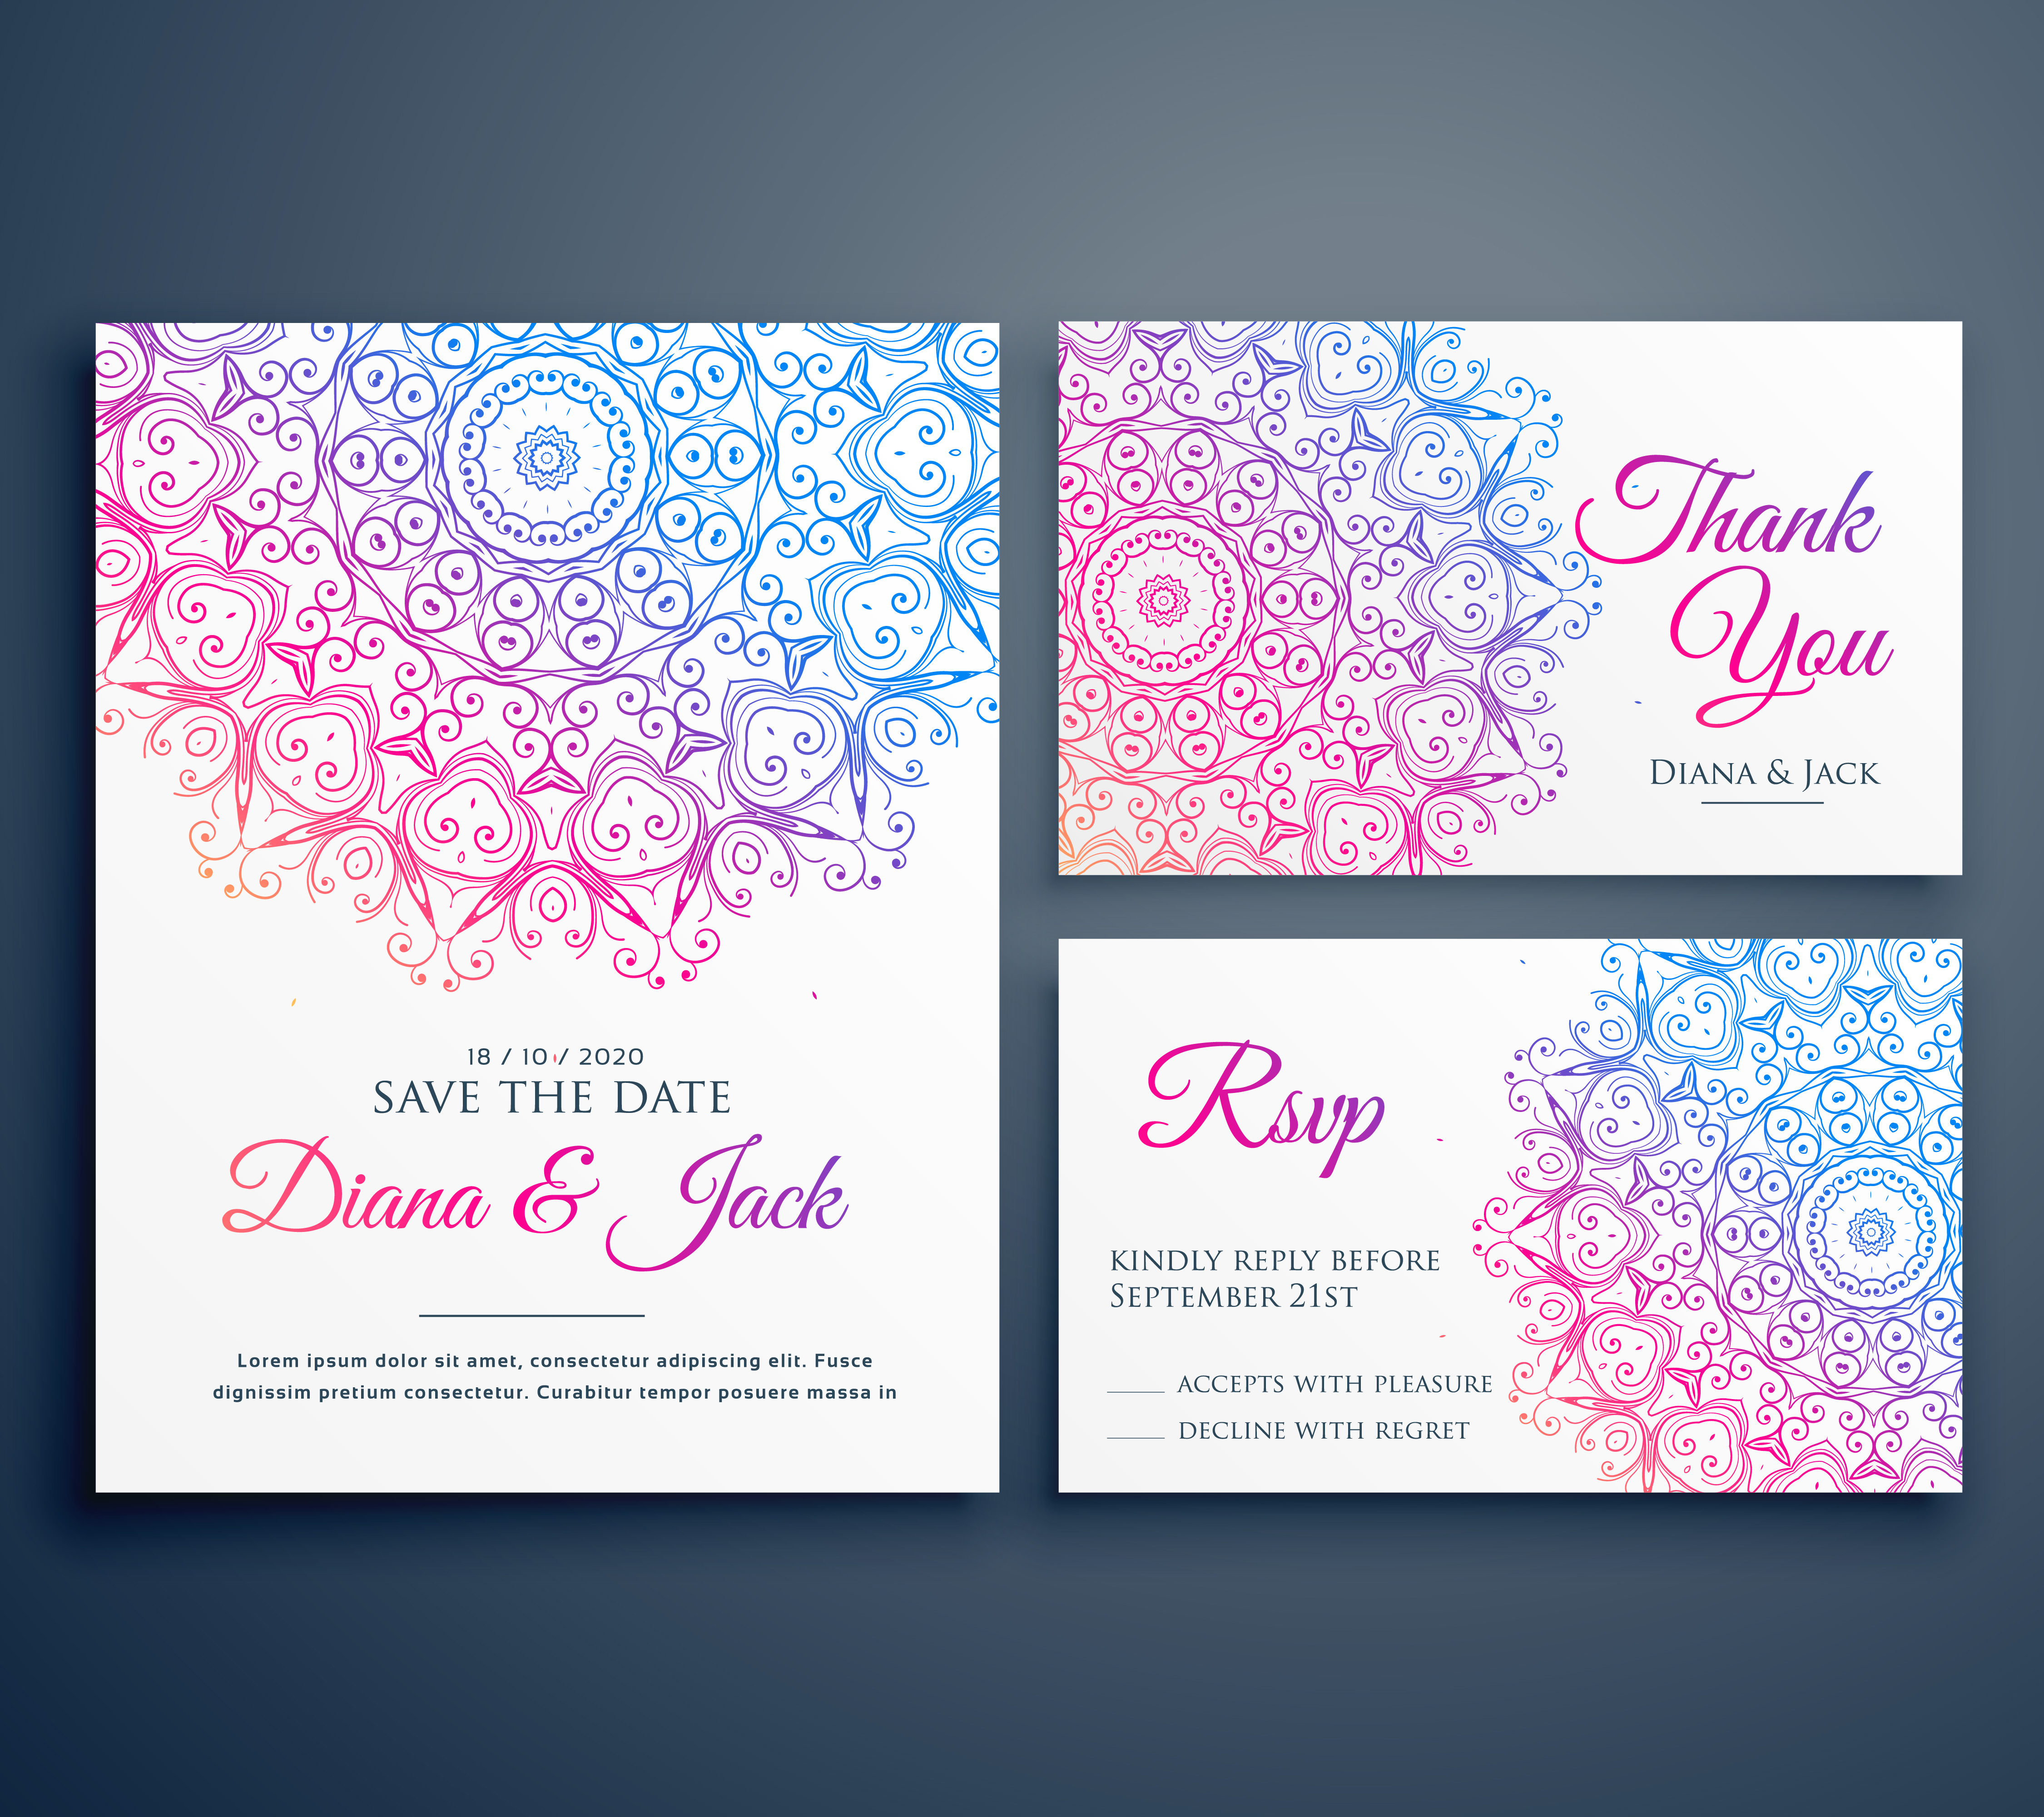 mandala style wedding invitation template with thank you